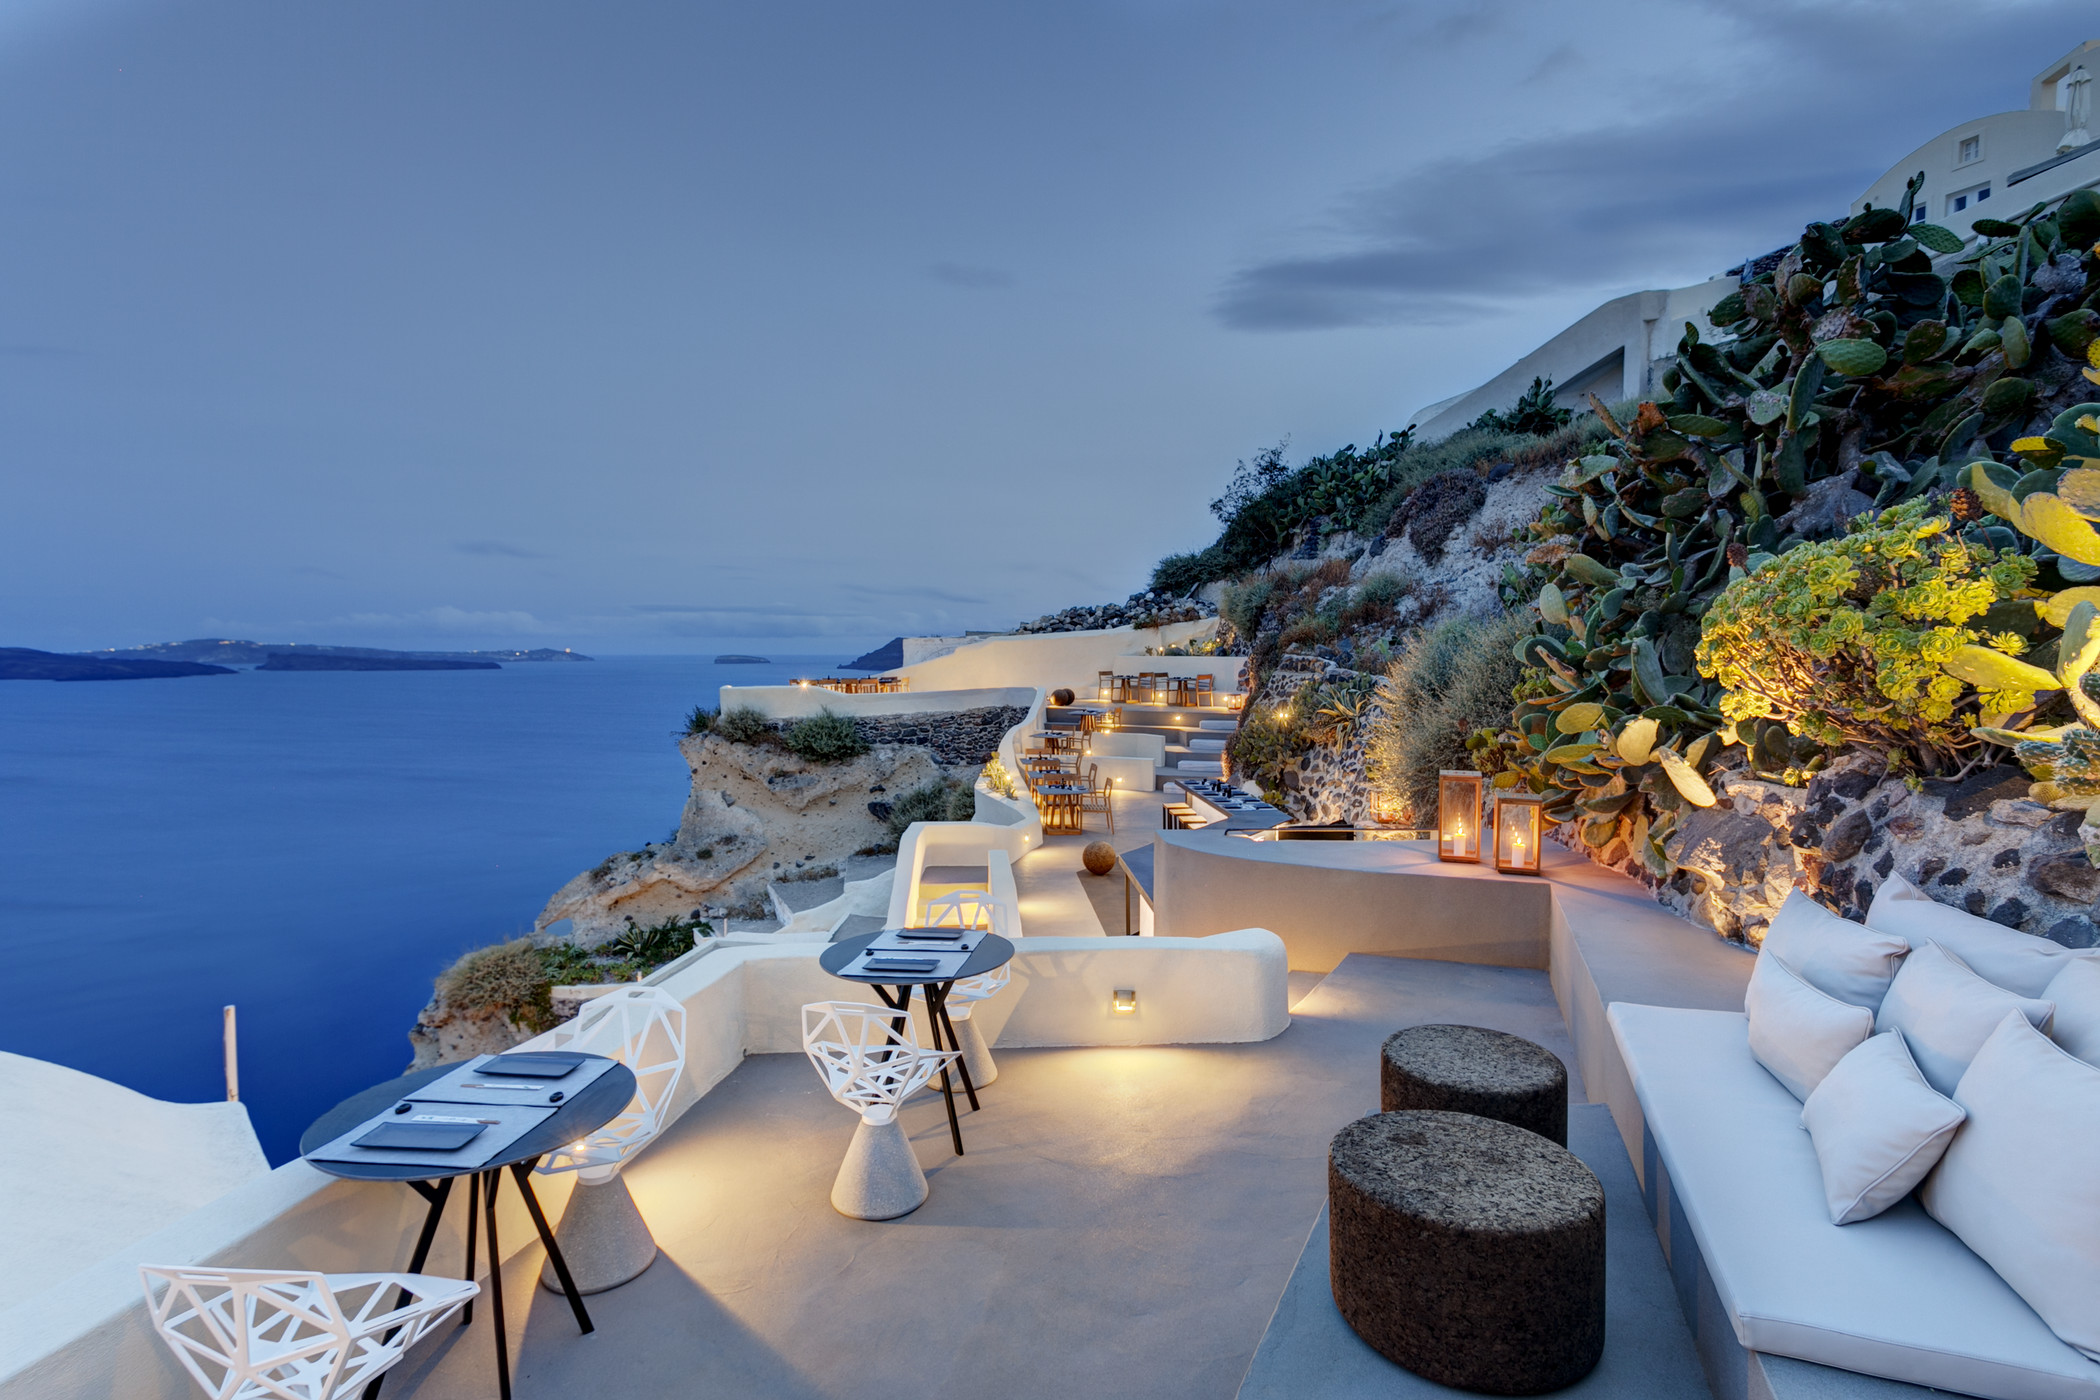 ASEA-Lounge-Restaurant-at-Mystique-a-Luxury-Collection-Hotel-Santorini.jpg